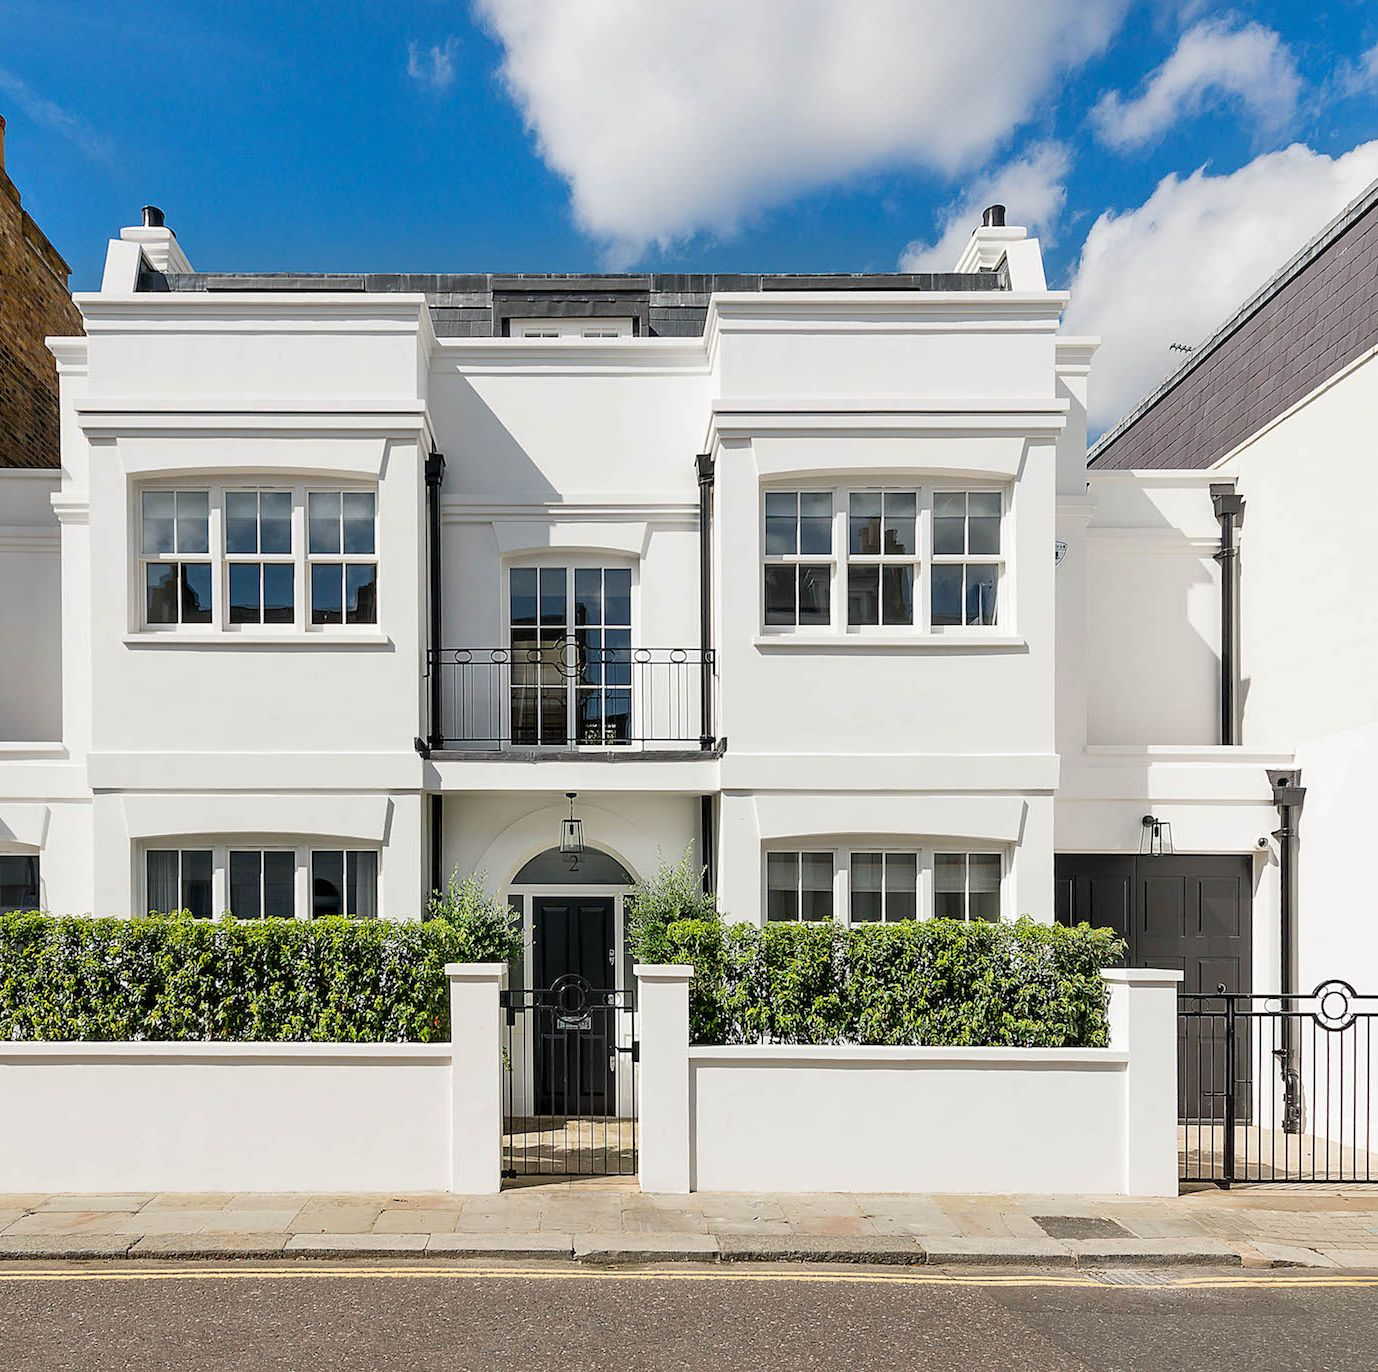 Wonderful family home with spectacular gardens for sale in Chelsea